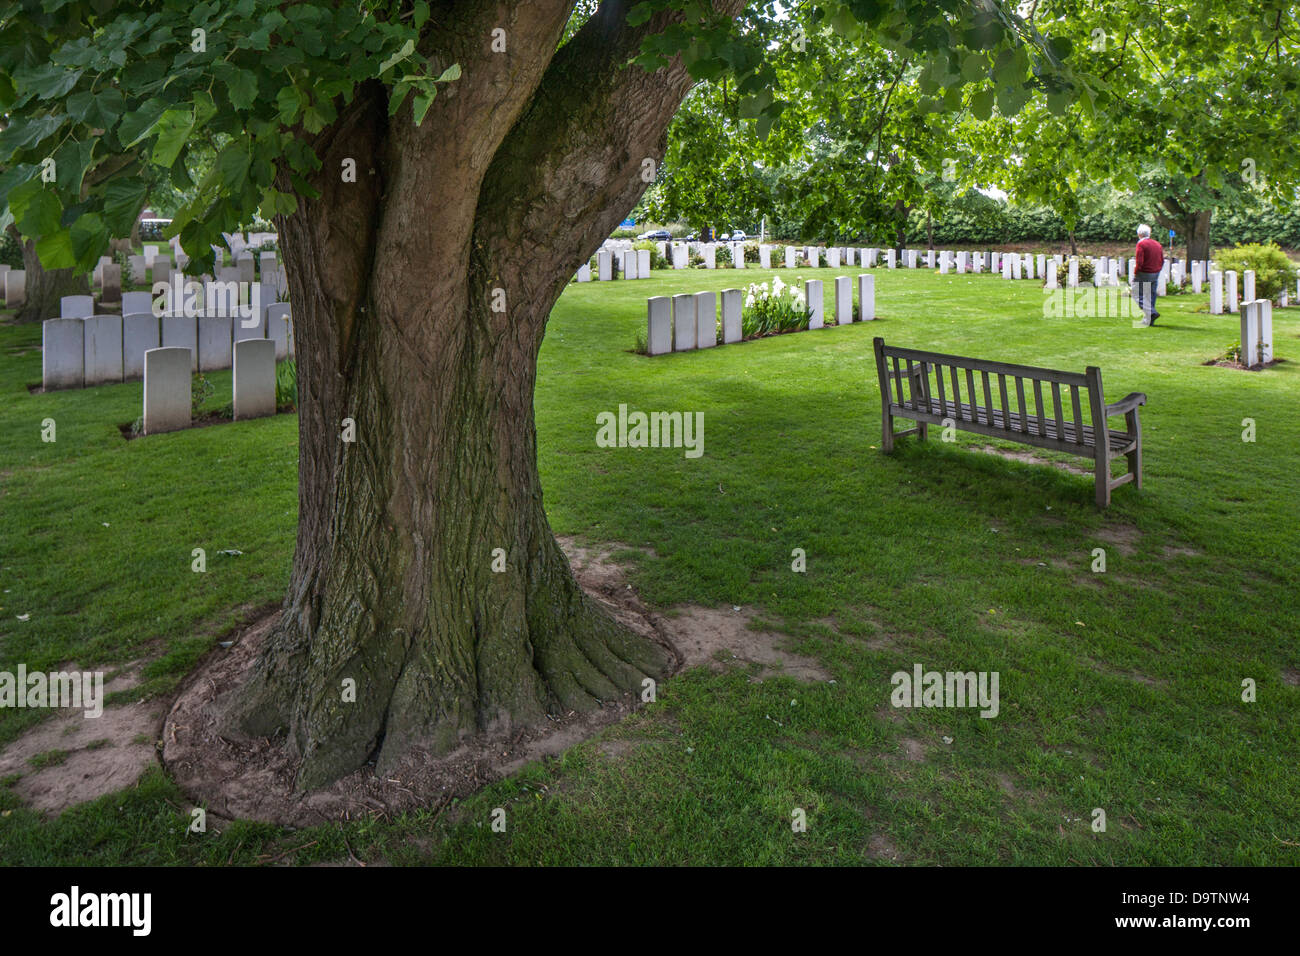 Essex Farm Cemetery, WWI burial ground for First World War One British soldiers at Boezinge, West Flanders, Belgium Stock Photo